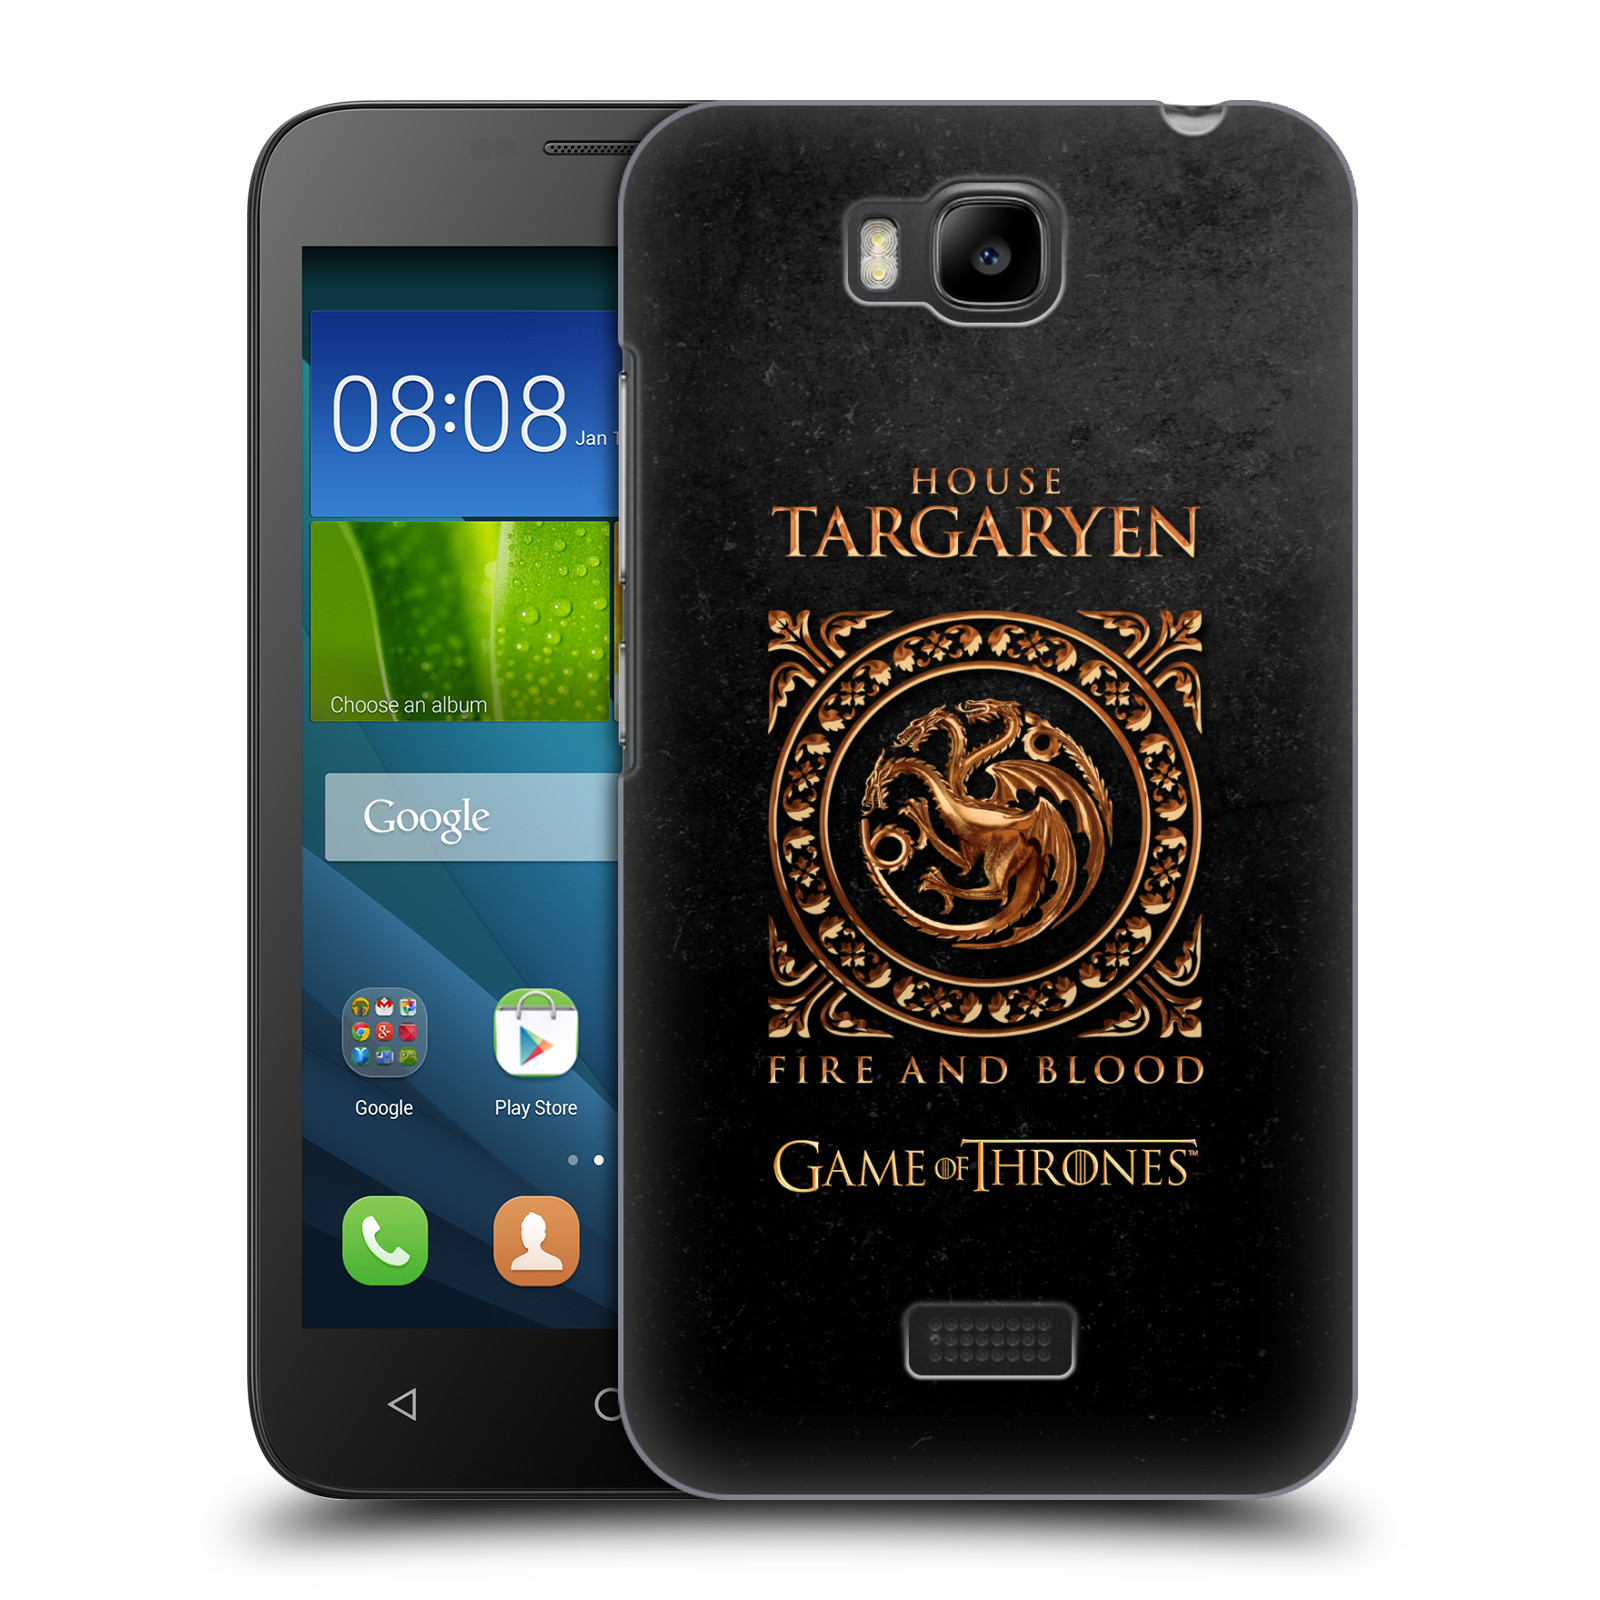 HBO-GAME-OF-THRONES-SYMBOLES-METALLIQUES-ETUI-COQUE-POUR-HUAWEI-TELEPHONES-2